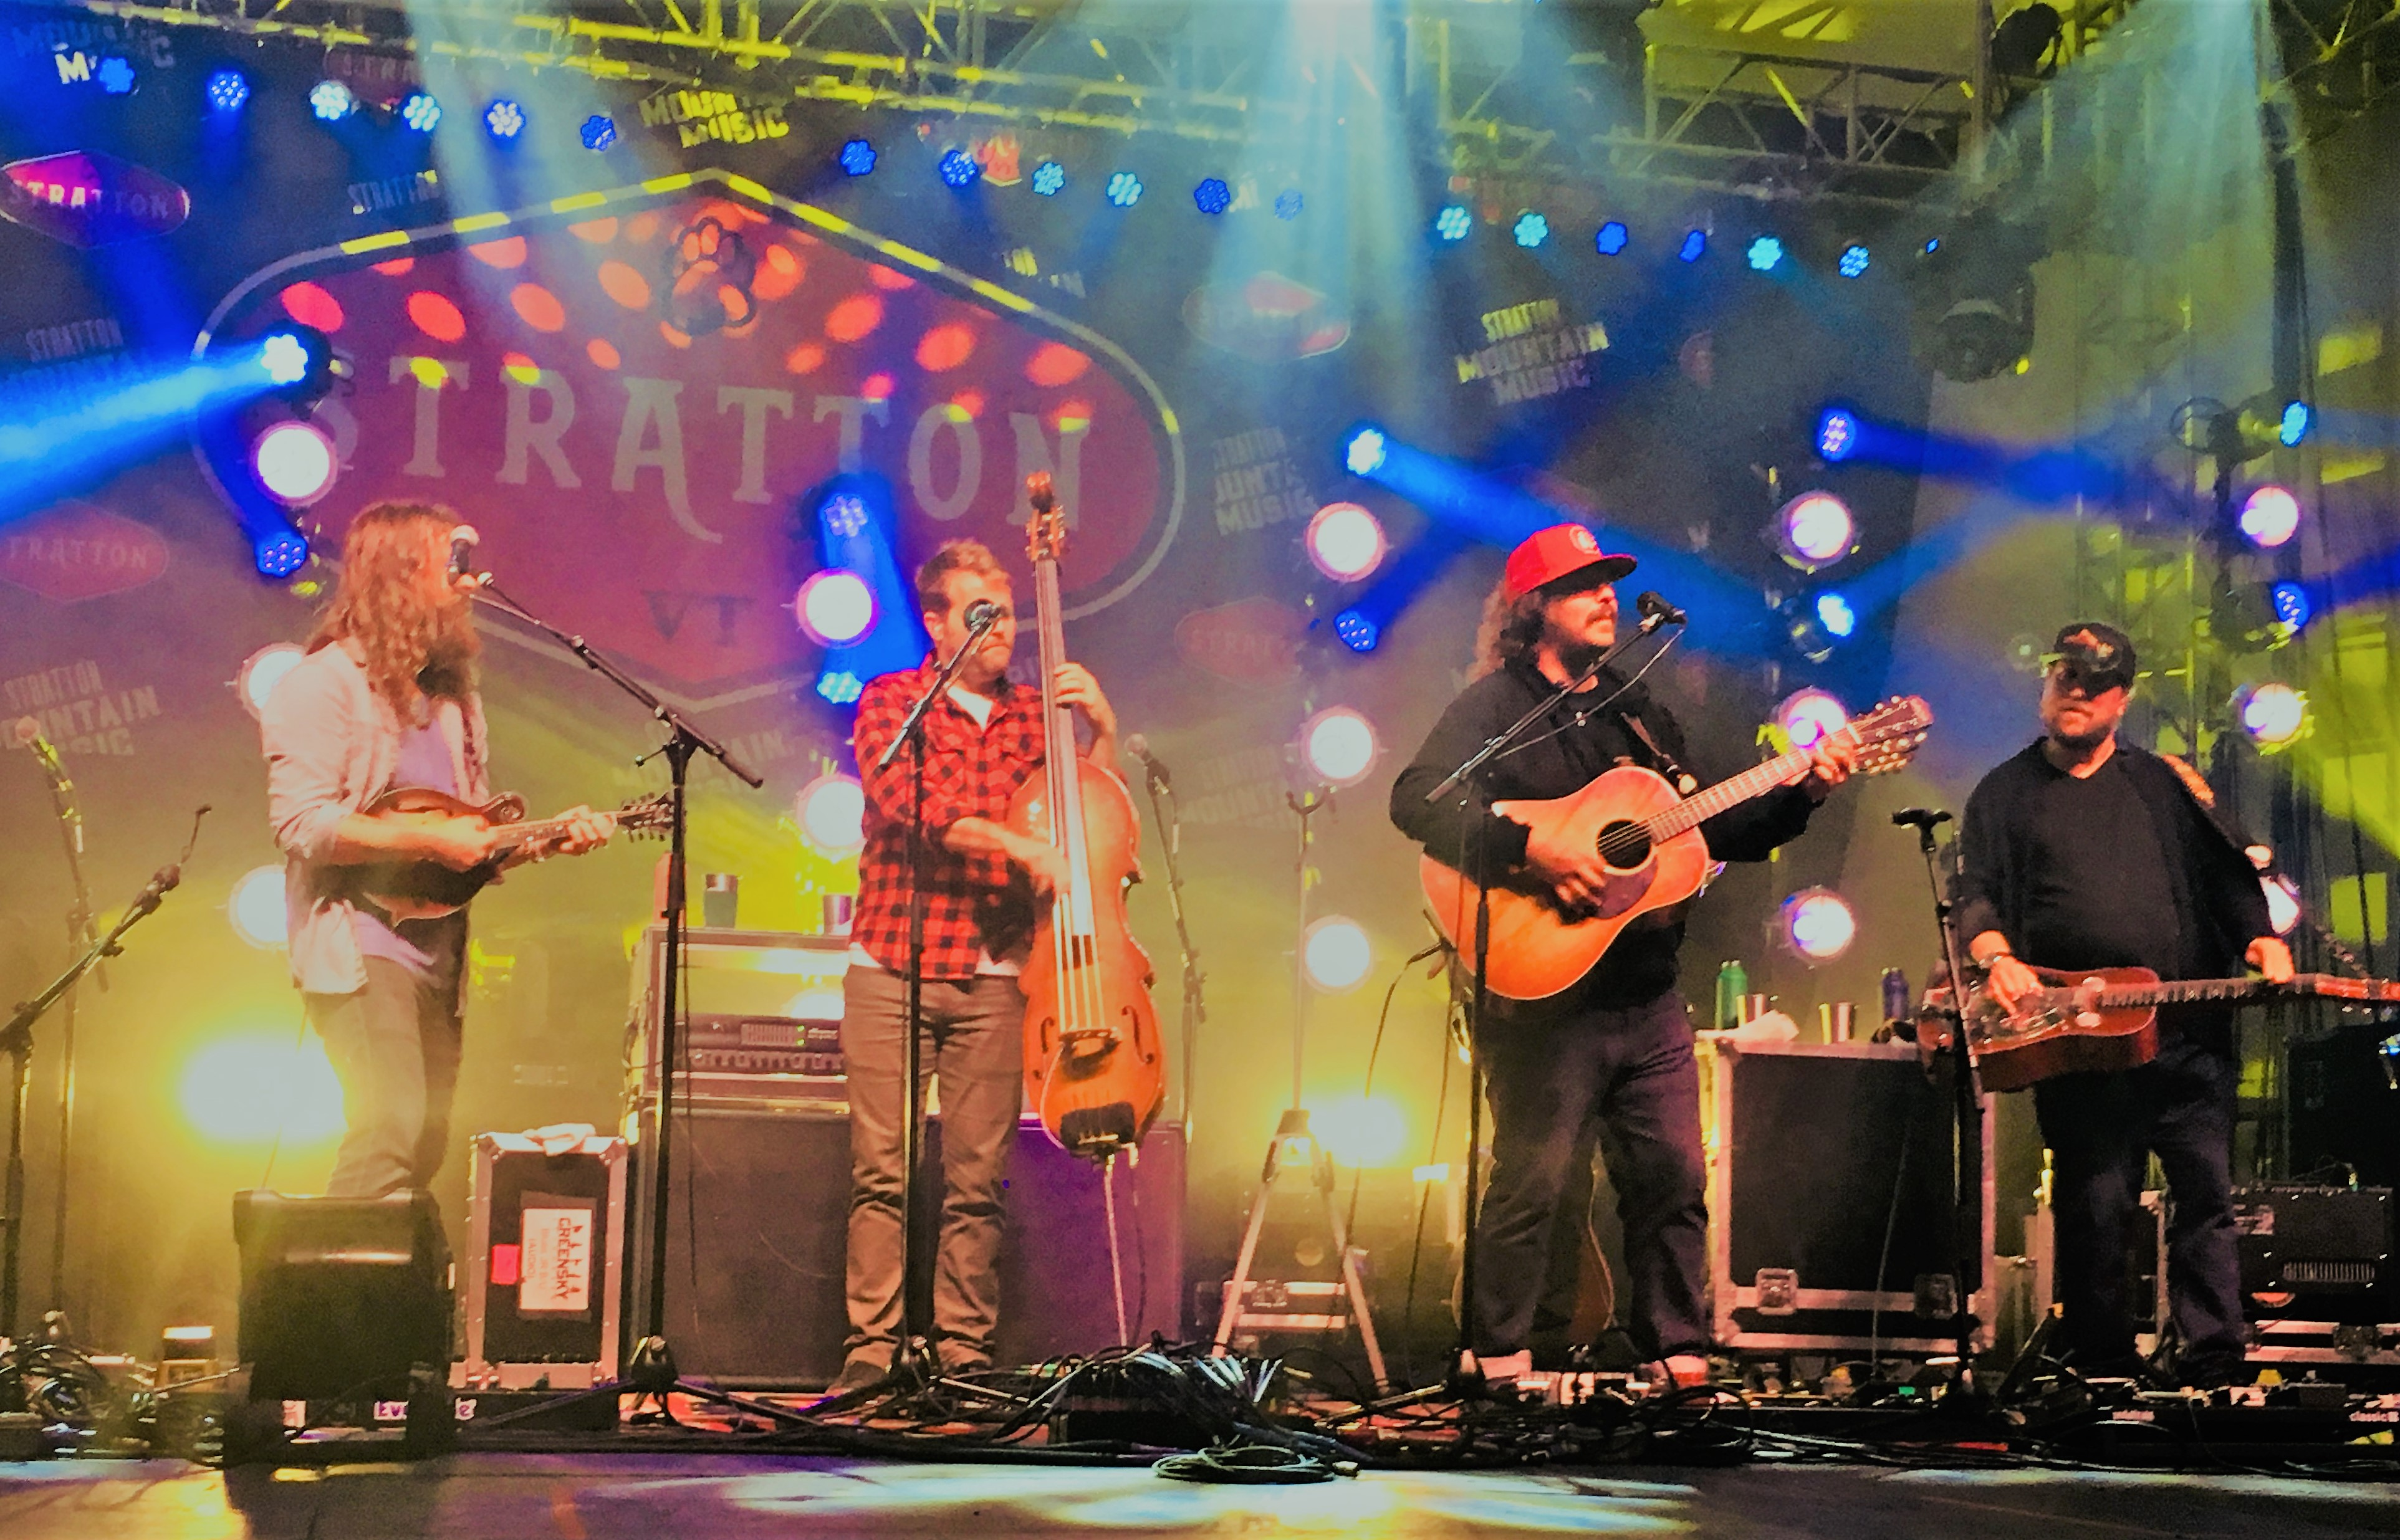 Greensky Bluegrass | Stratton, VT | photo by Jacqui Morton